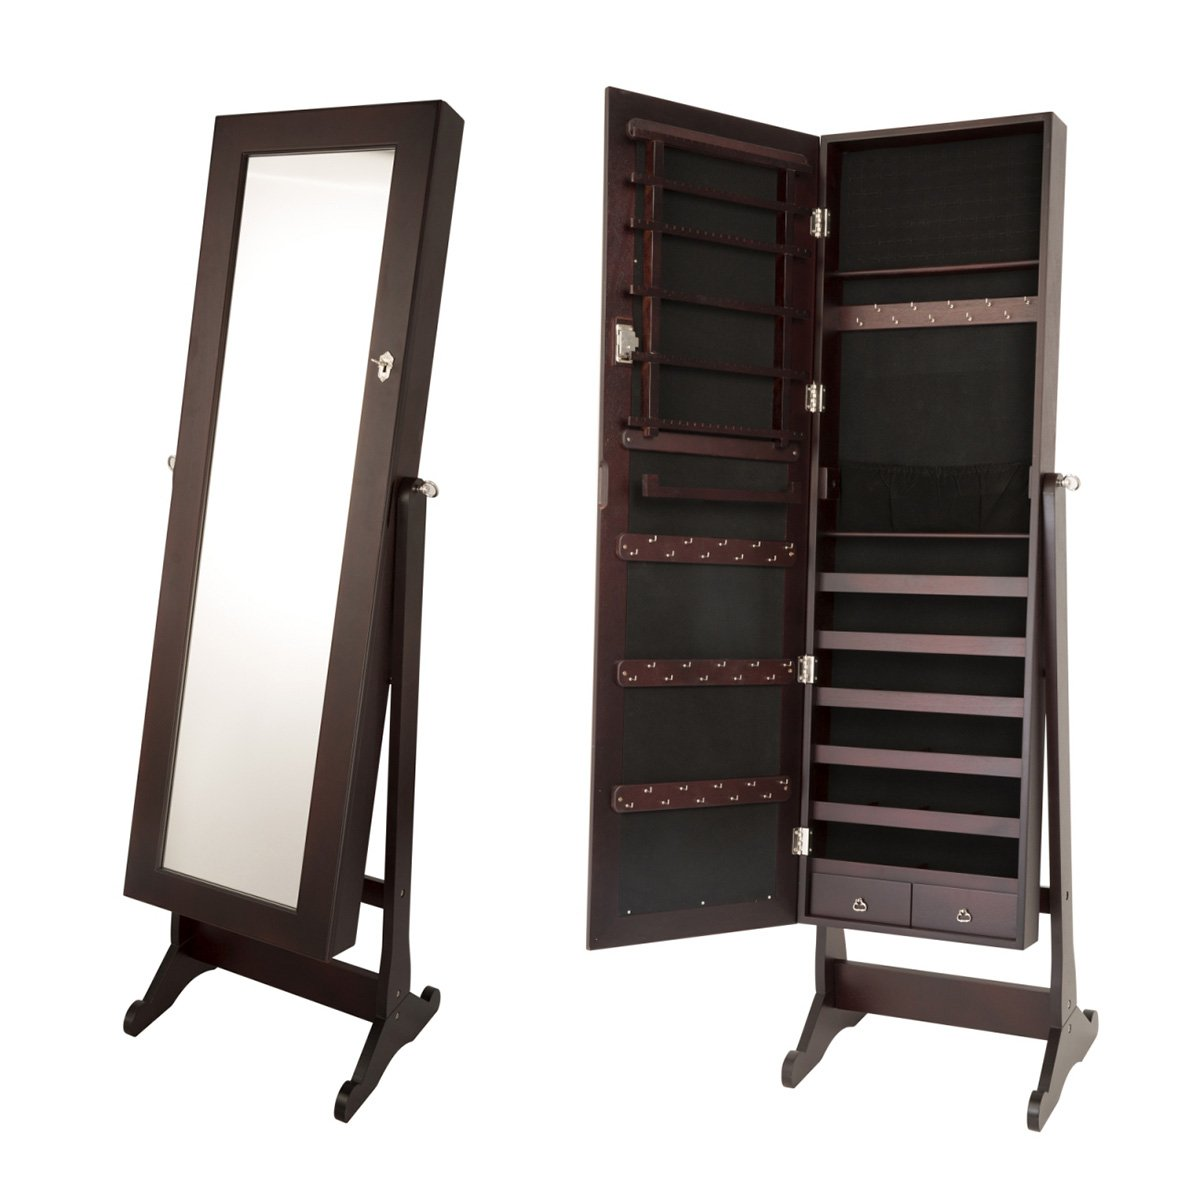 Pupula Mirror Jewelry Cabinet 4 Floor Lockable Standing Jewelry Armoire Organizer with Mirror with 2 Drawers 3 Angles (Brown)